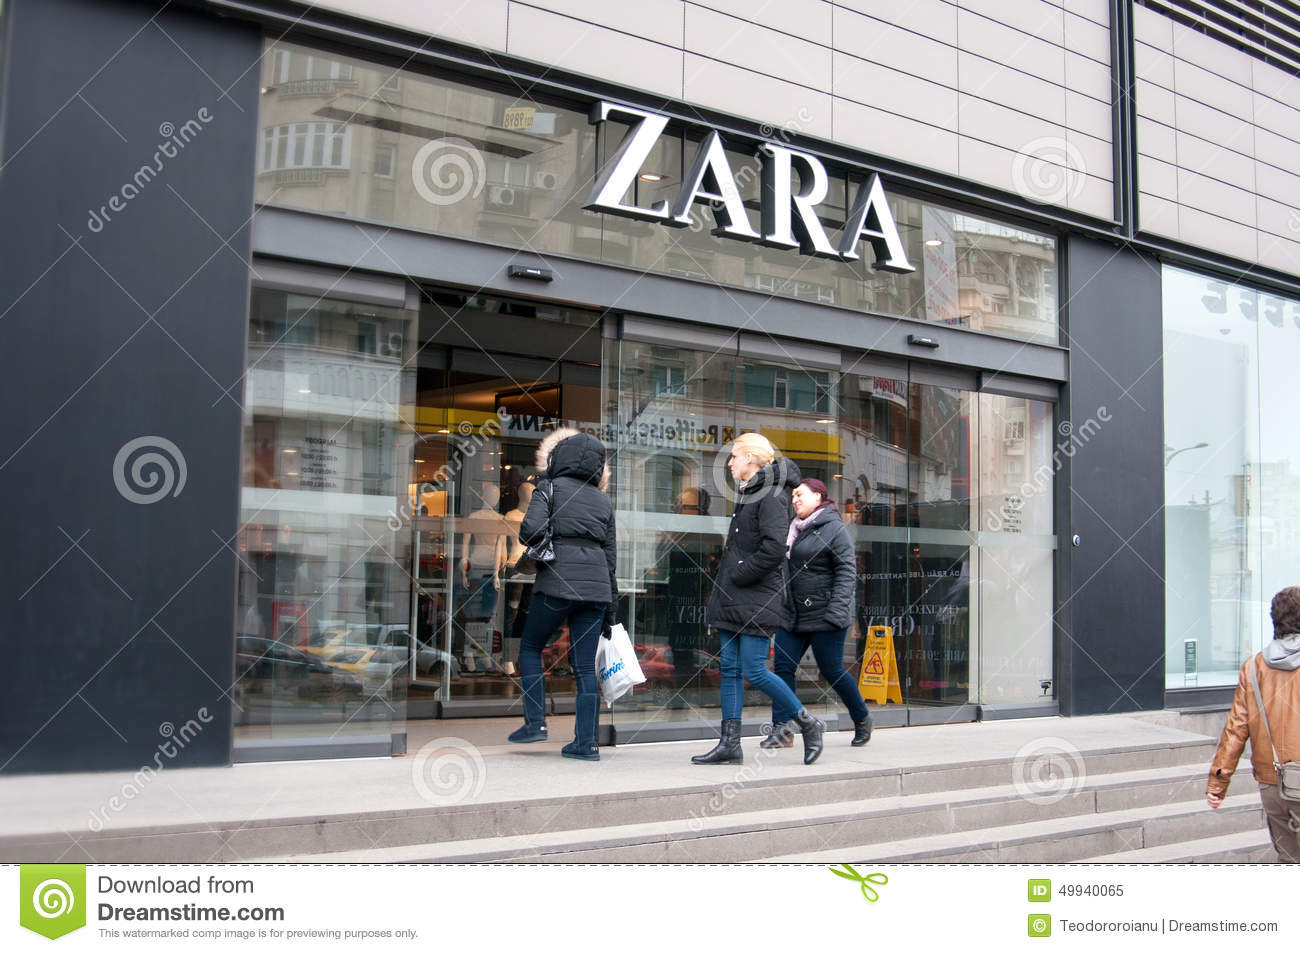 Find great deals on eBay for zara. Shop with confidence.